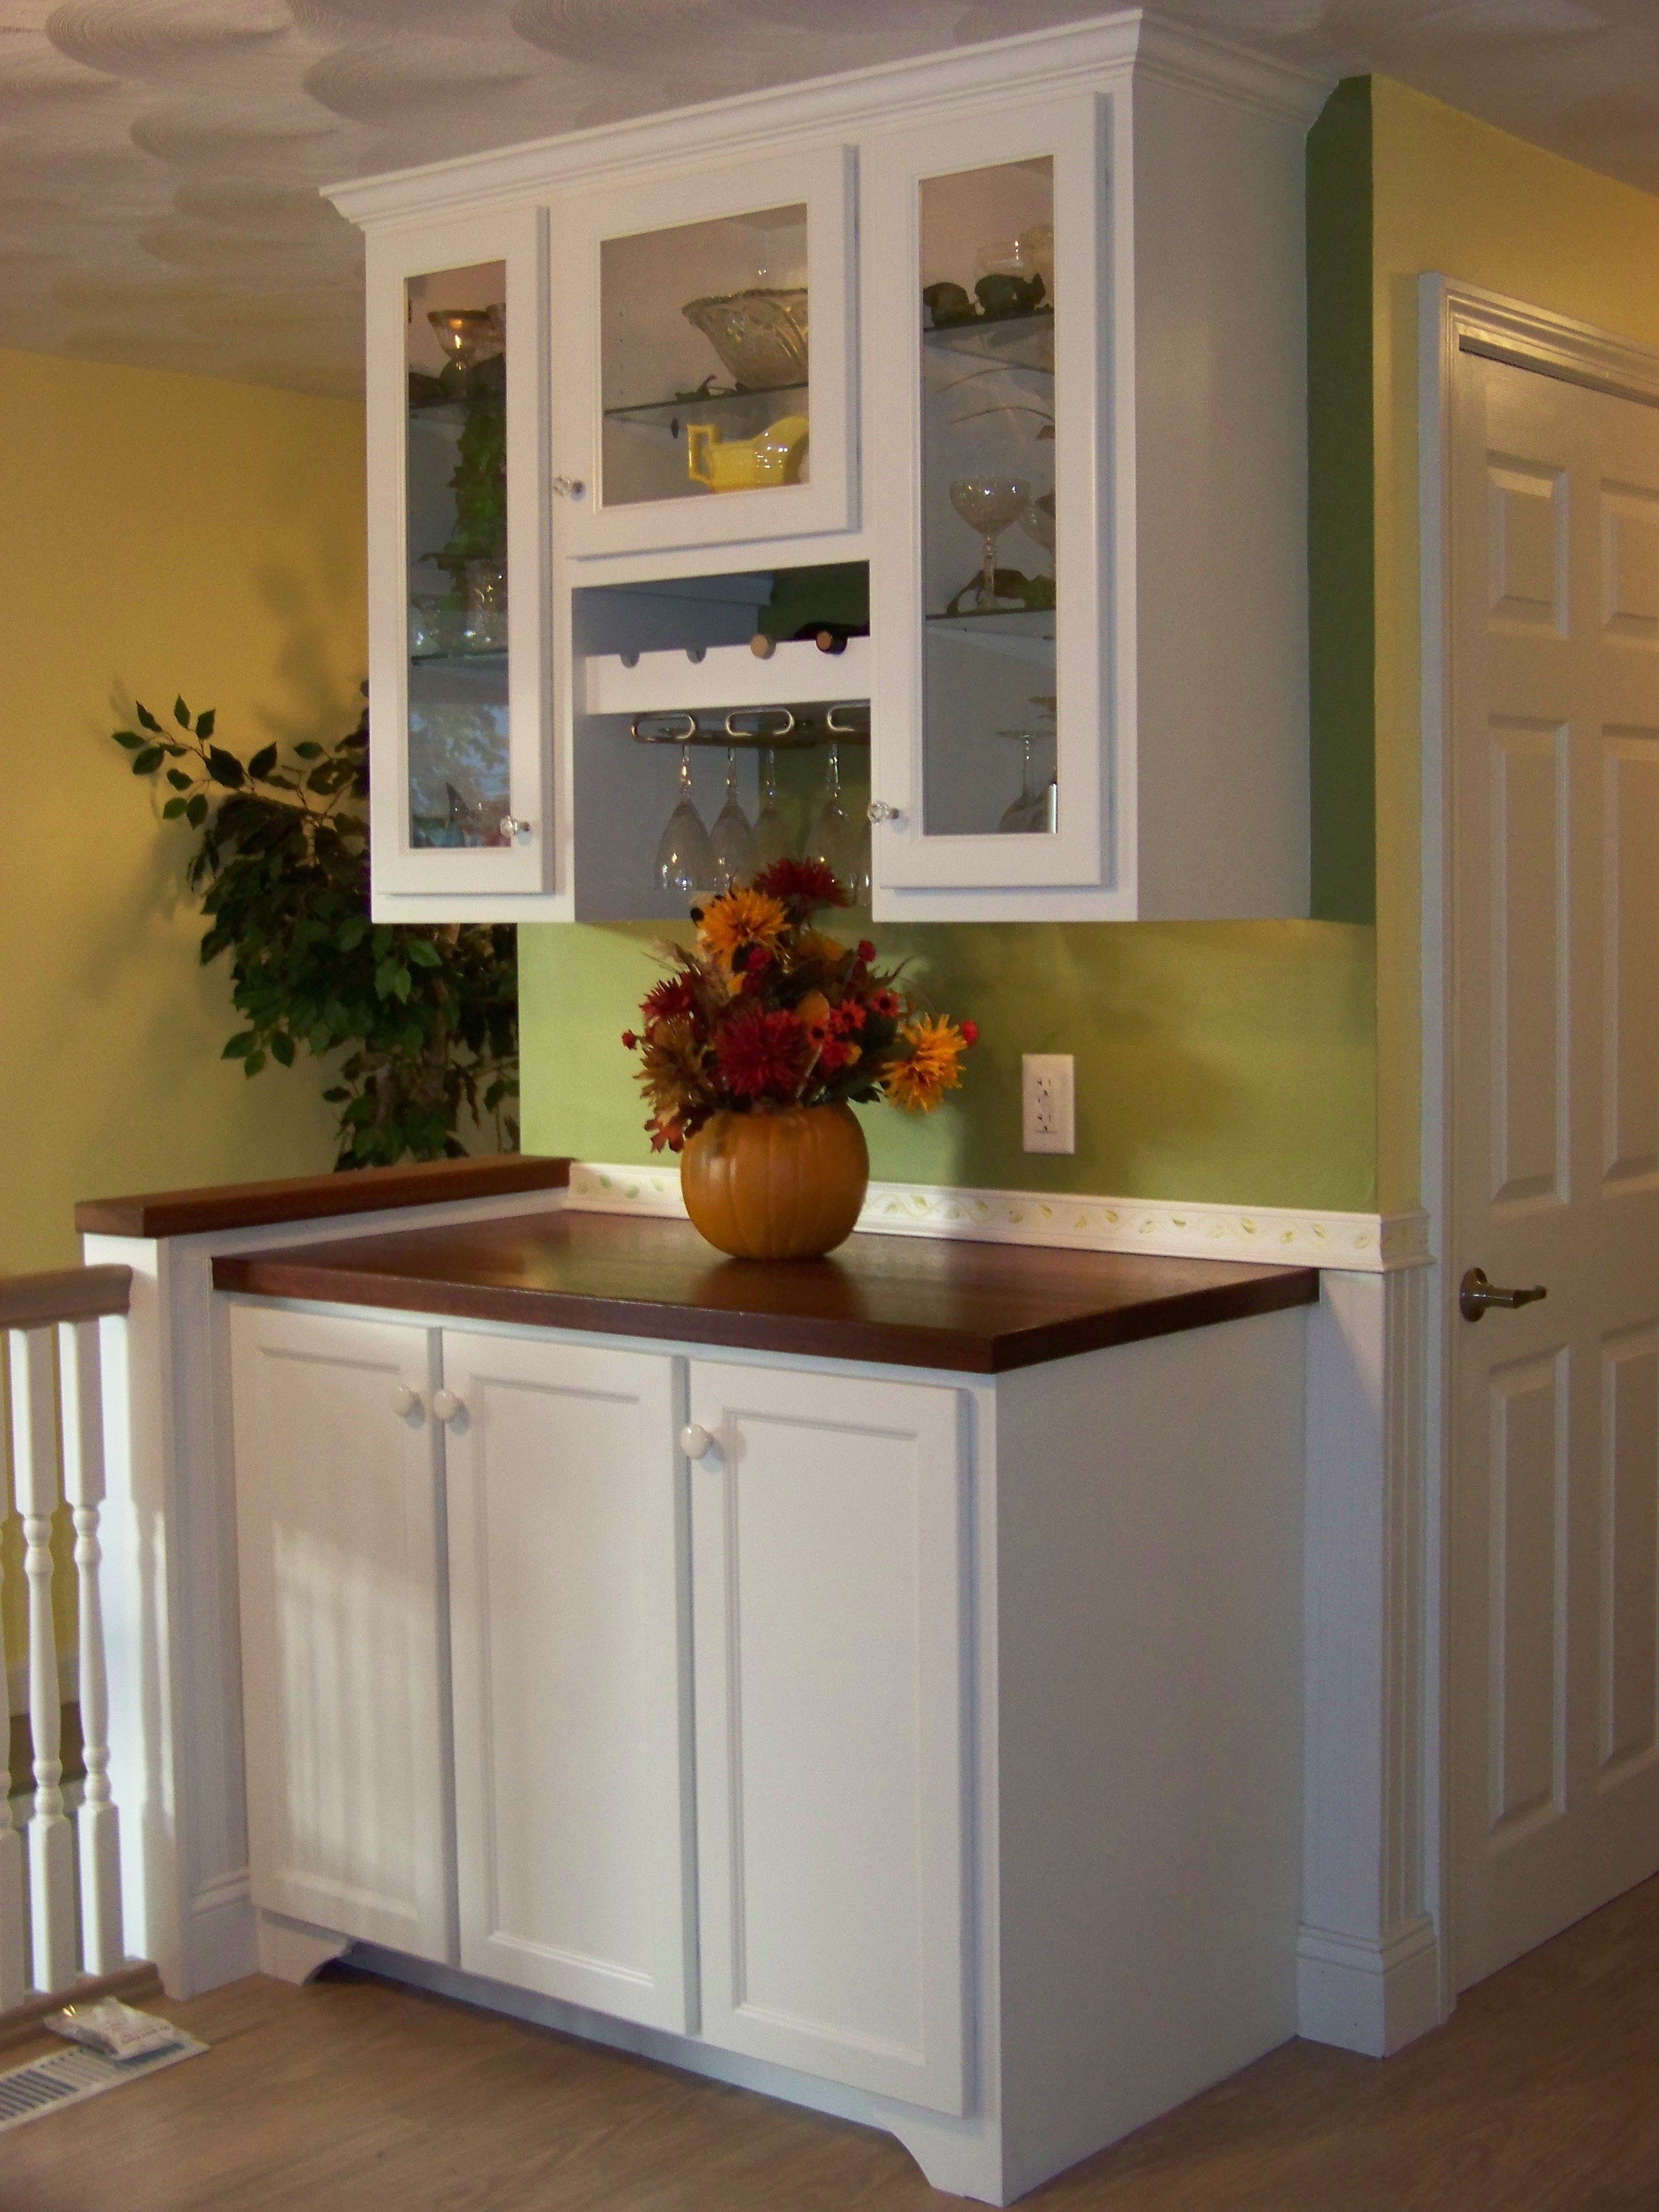 custom kitchen cabinets ri custom kitchen cabinets custom kitchen cabinets ri 4